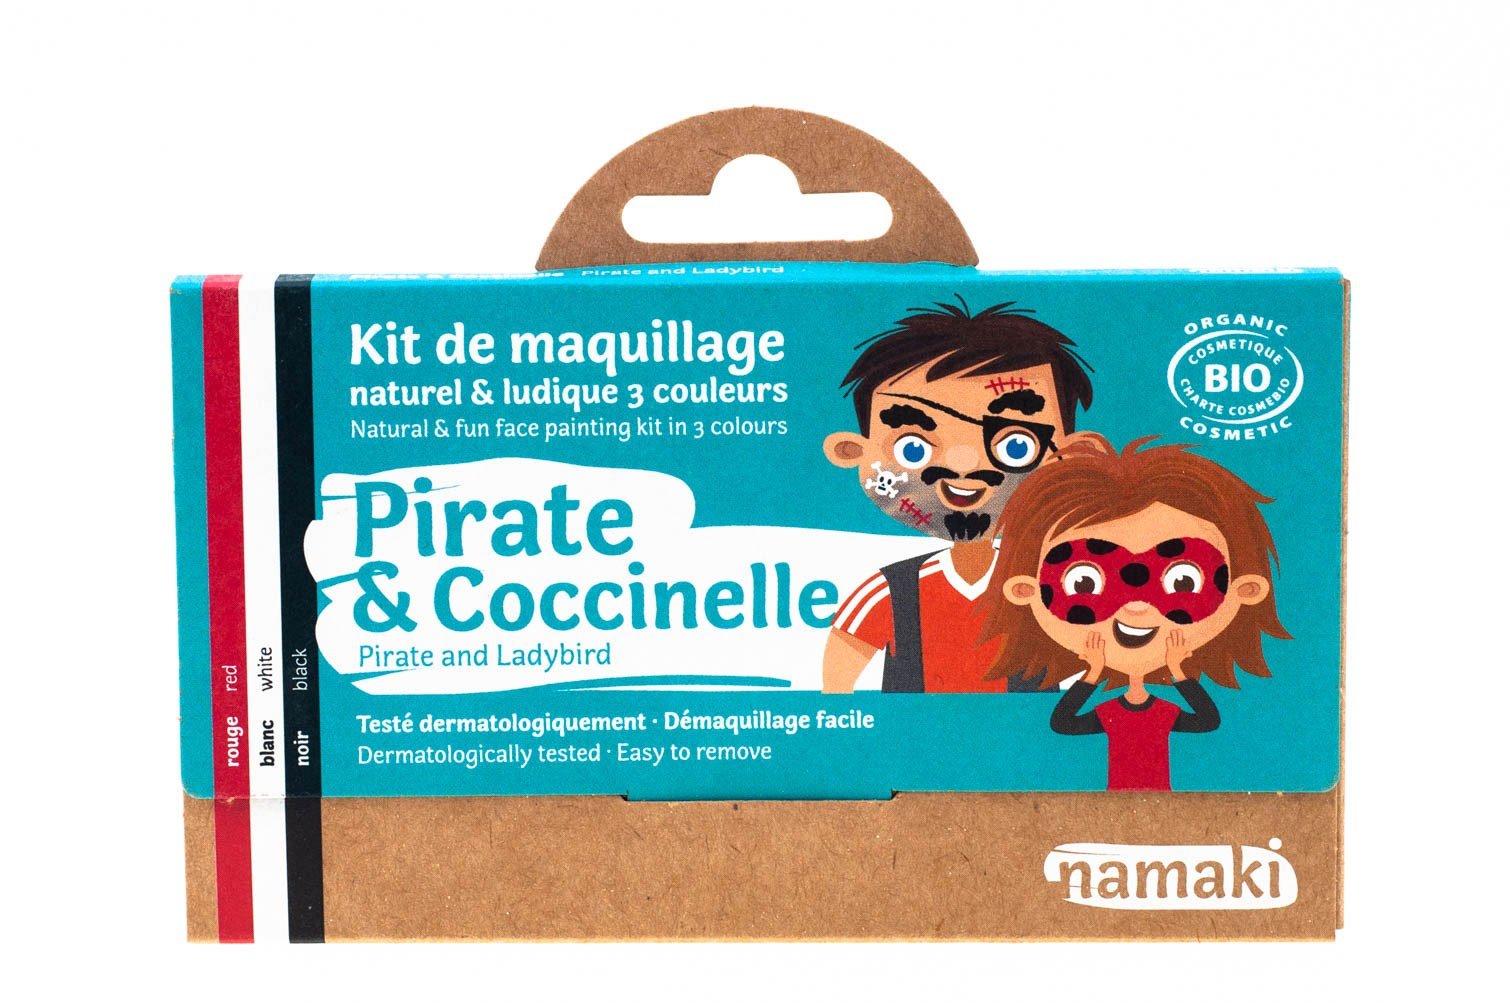 kit de maquillage bio Namaki 3 couleurs Pirate & Coccinelle - vue face